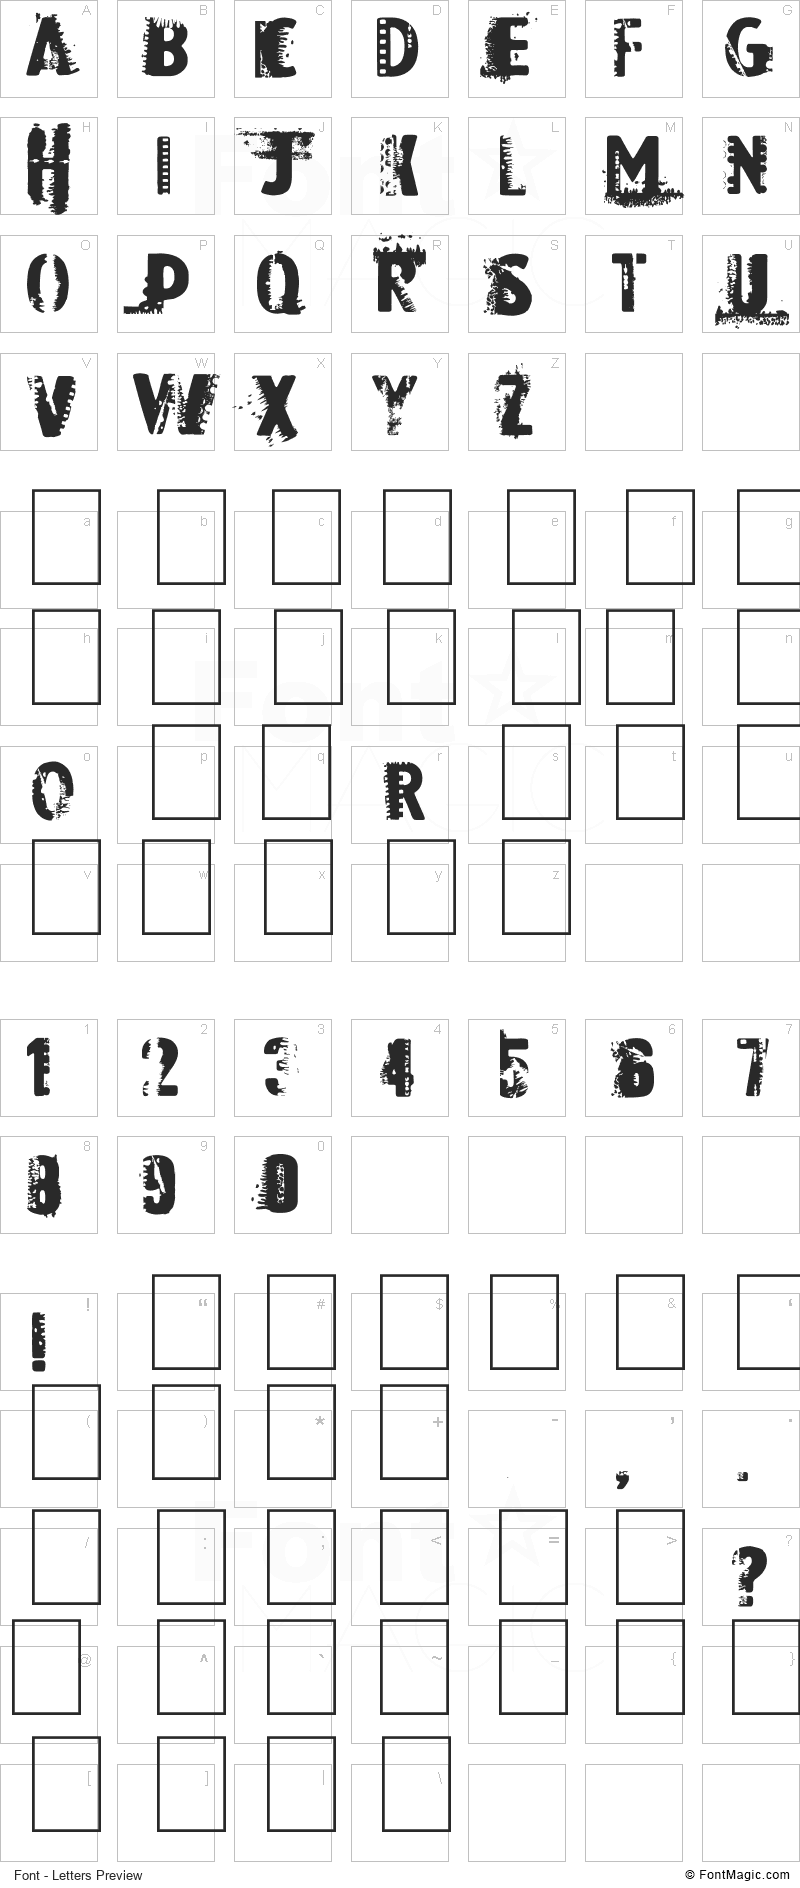 Dark Room Font - All Latters Preview Chart